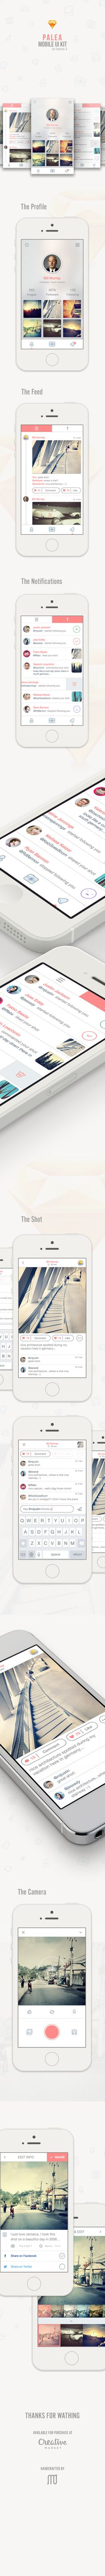 Palea Mobile UI Kit for Sketch#ui #ux #mobile #design #app